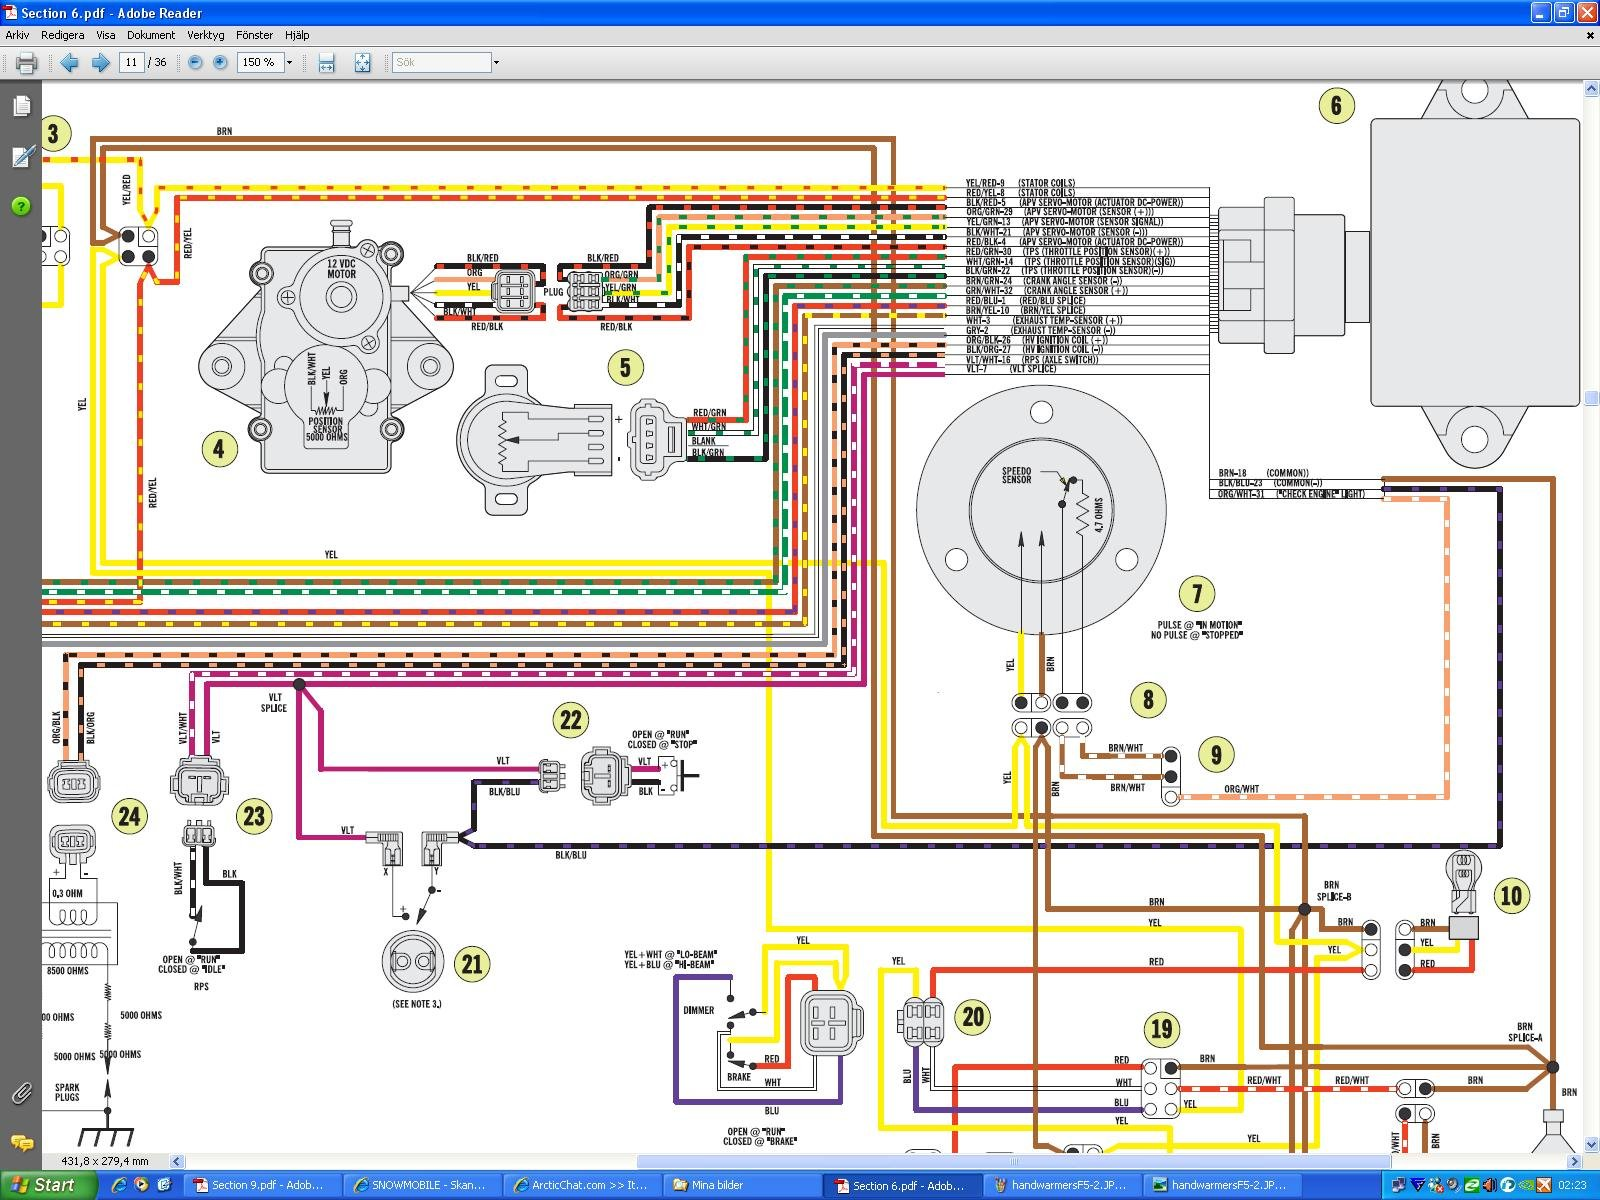 hight resolution of kawasaki kfx400 wiring diagram wiring diagram technic kawasaki kfx400 wiring diagram